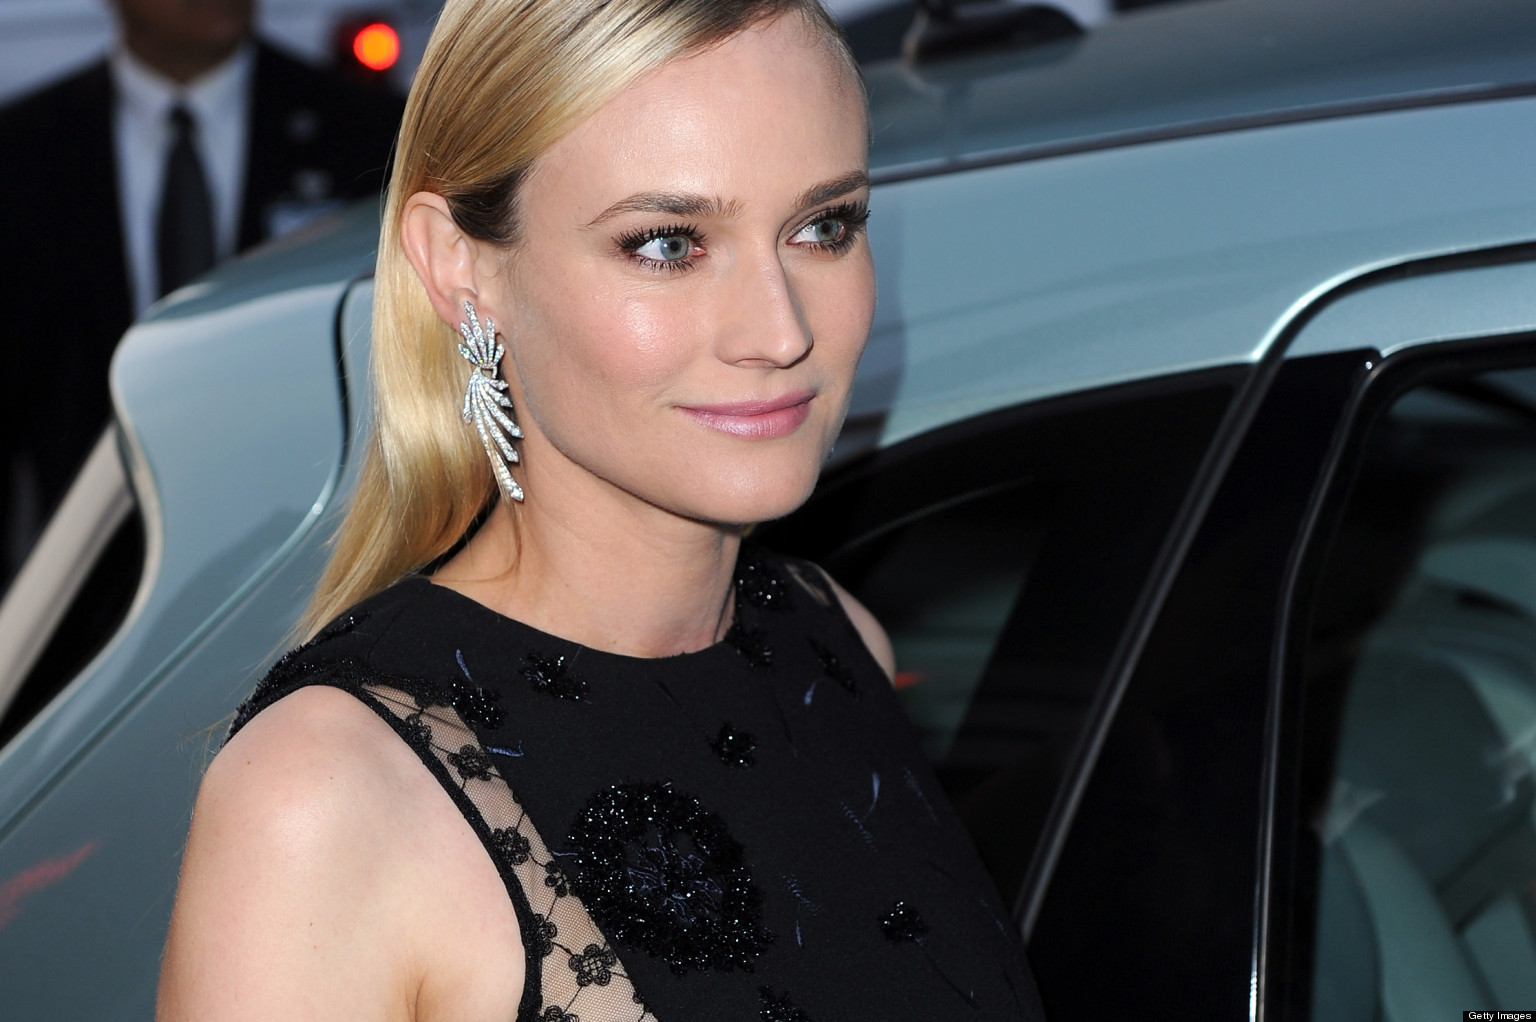 Diane Kruger lets her eyes do the work at film premiere